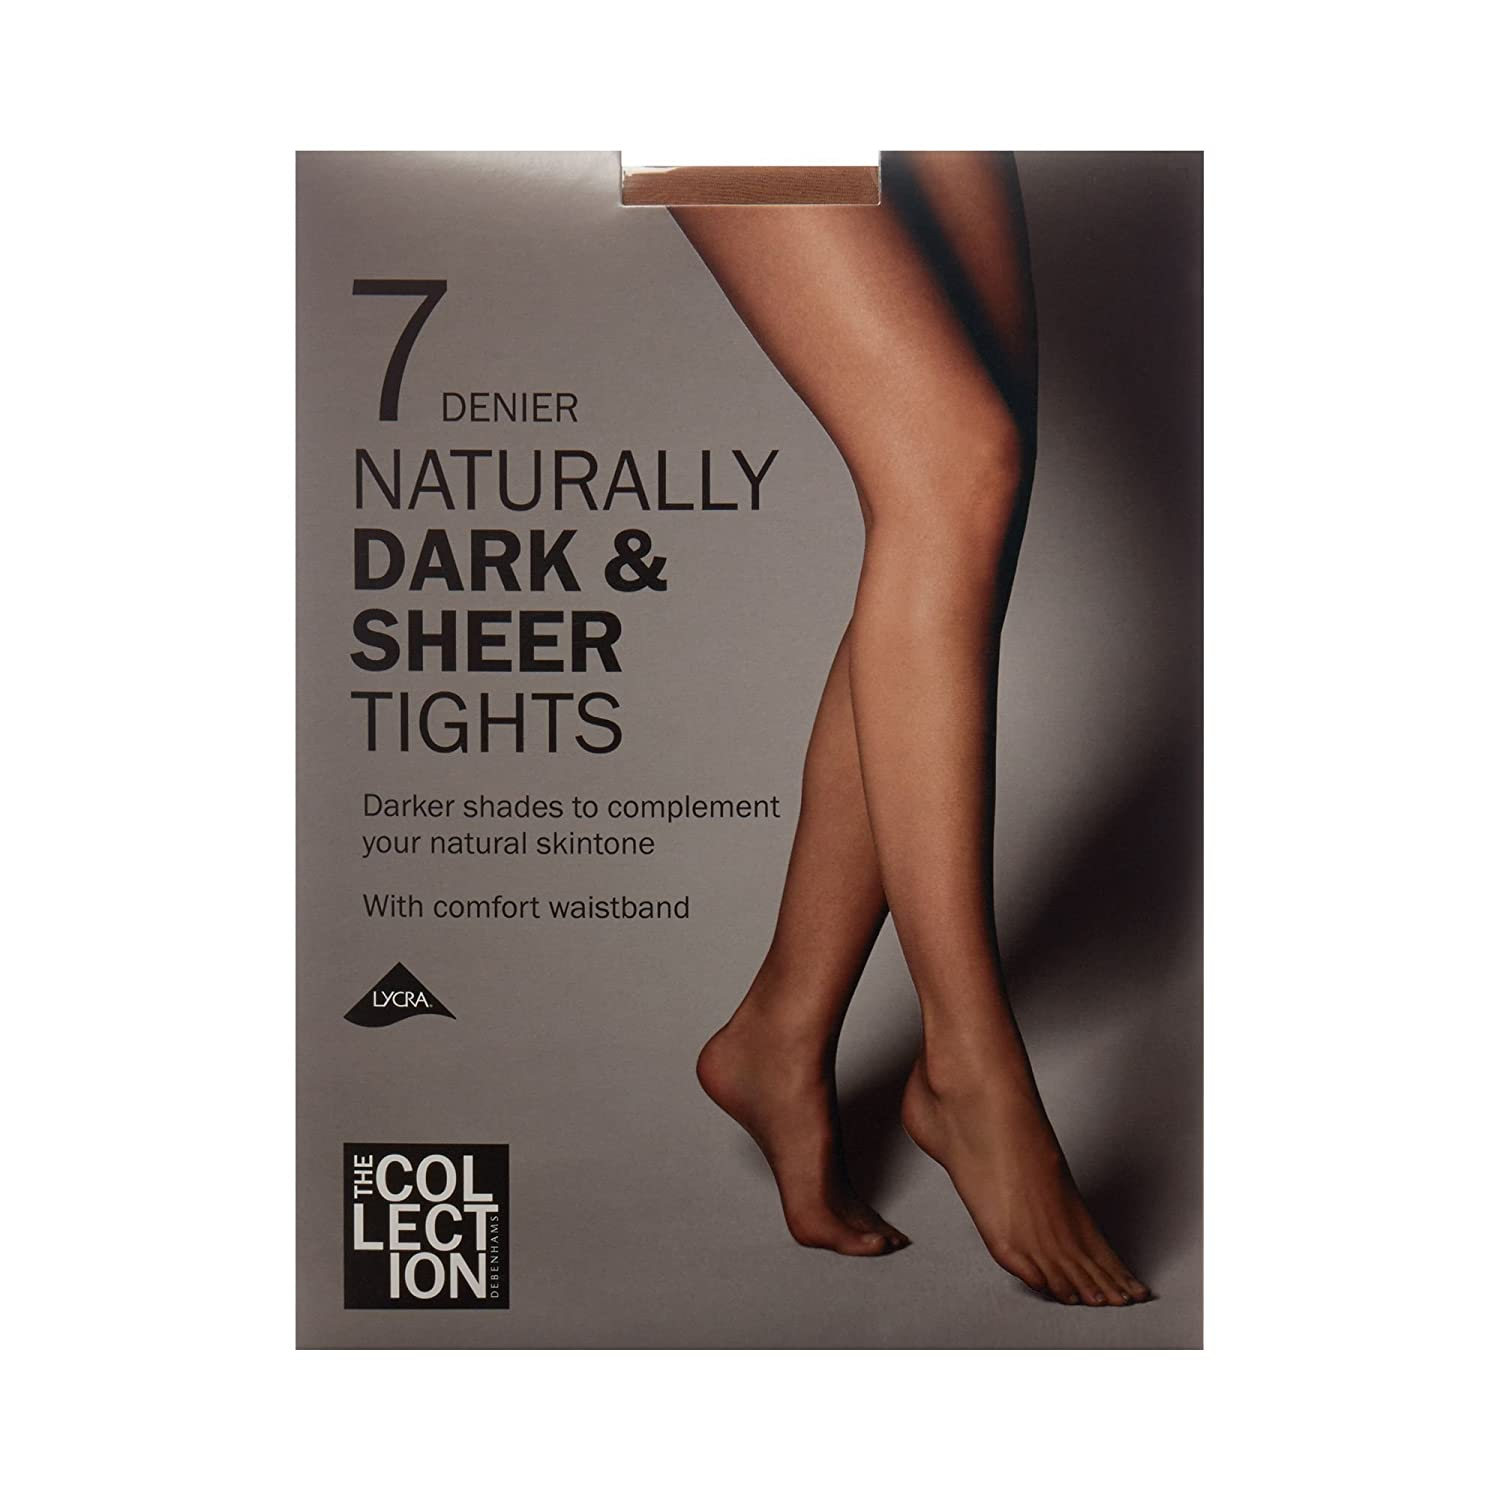 acec5064ef730 The Collection Womens Olive Green Sheer 7 Denier Tights: Debenhams:  Amazon.co.uk: Clothing